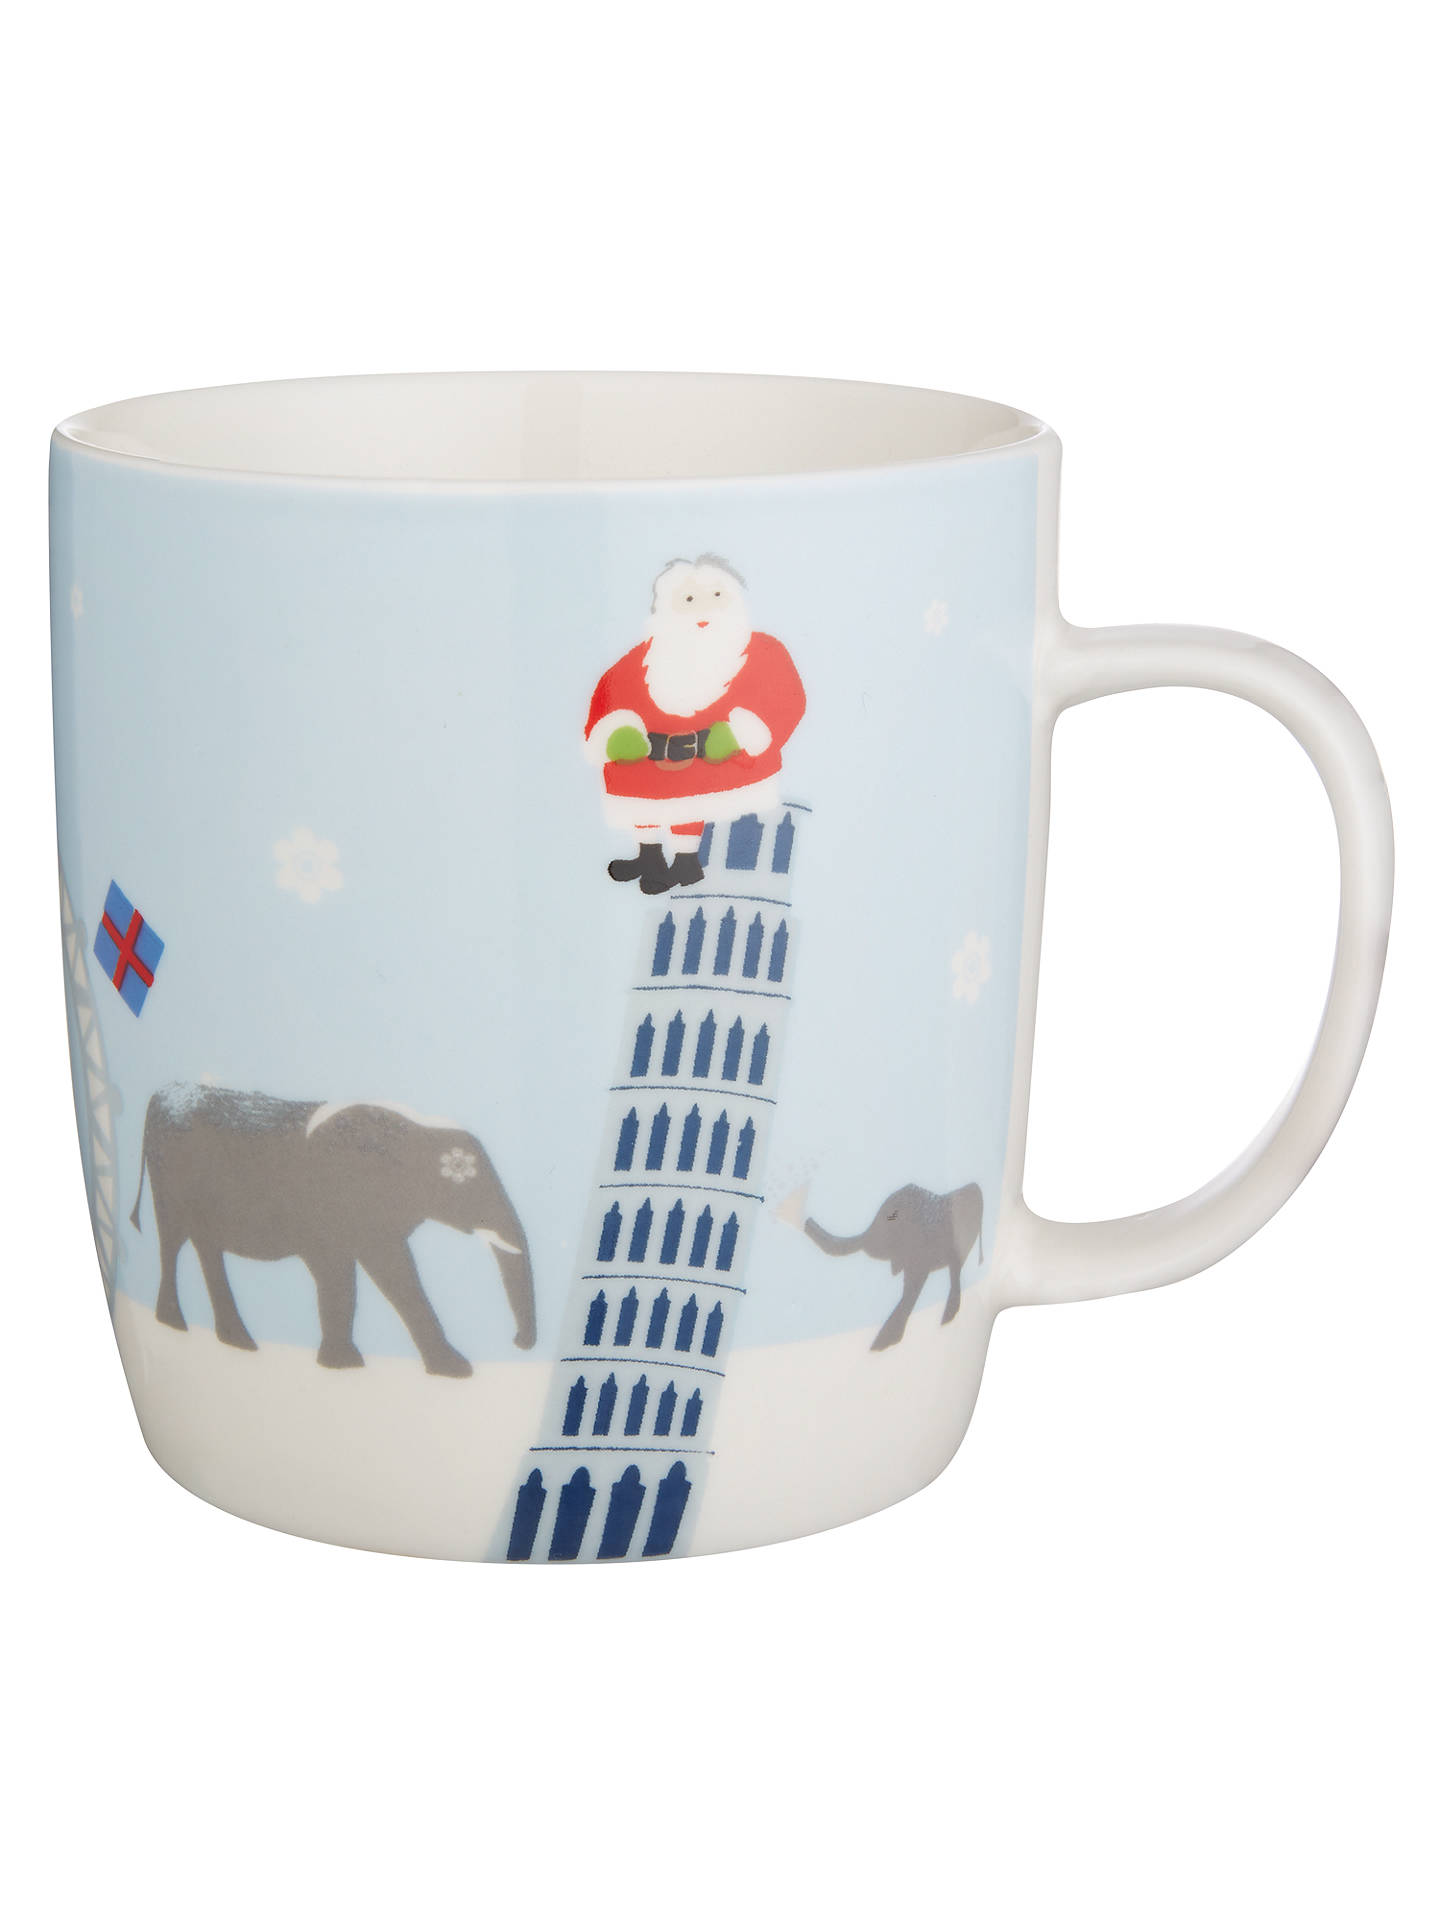 Buy John Lewis Elephant Mug In Tin, Blue Online at johnlewis.com